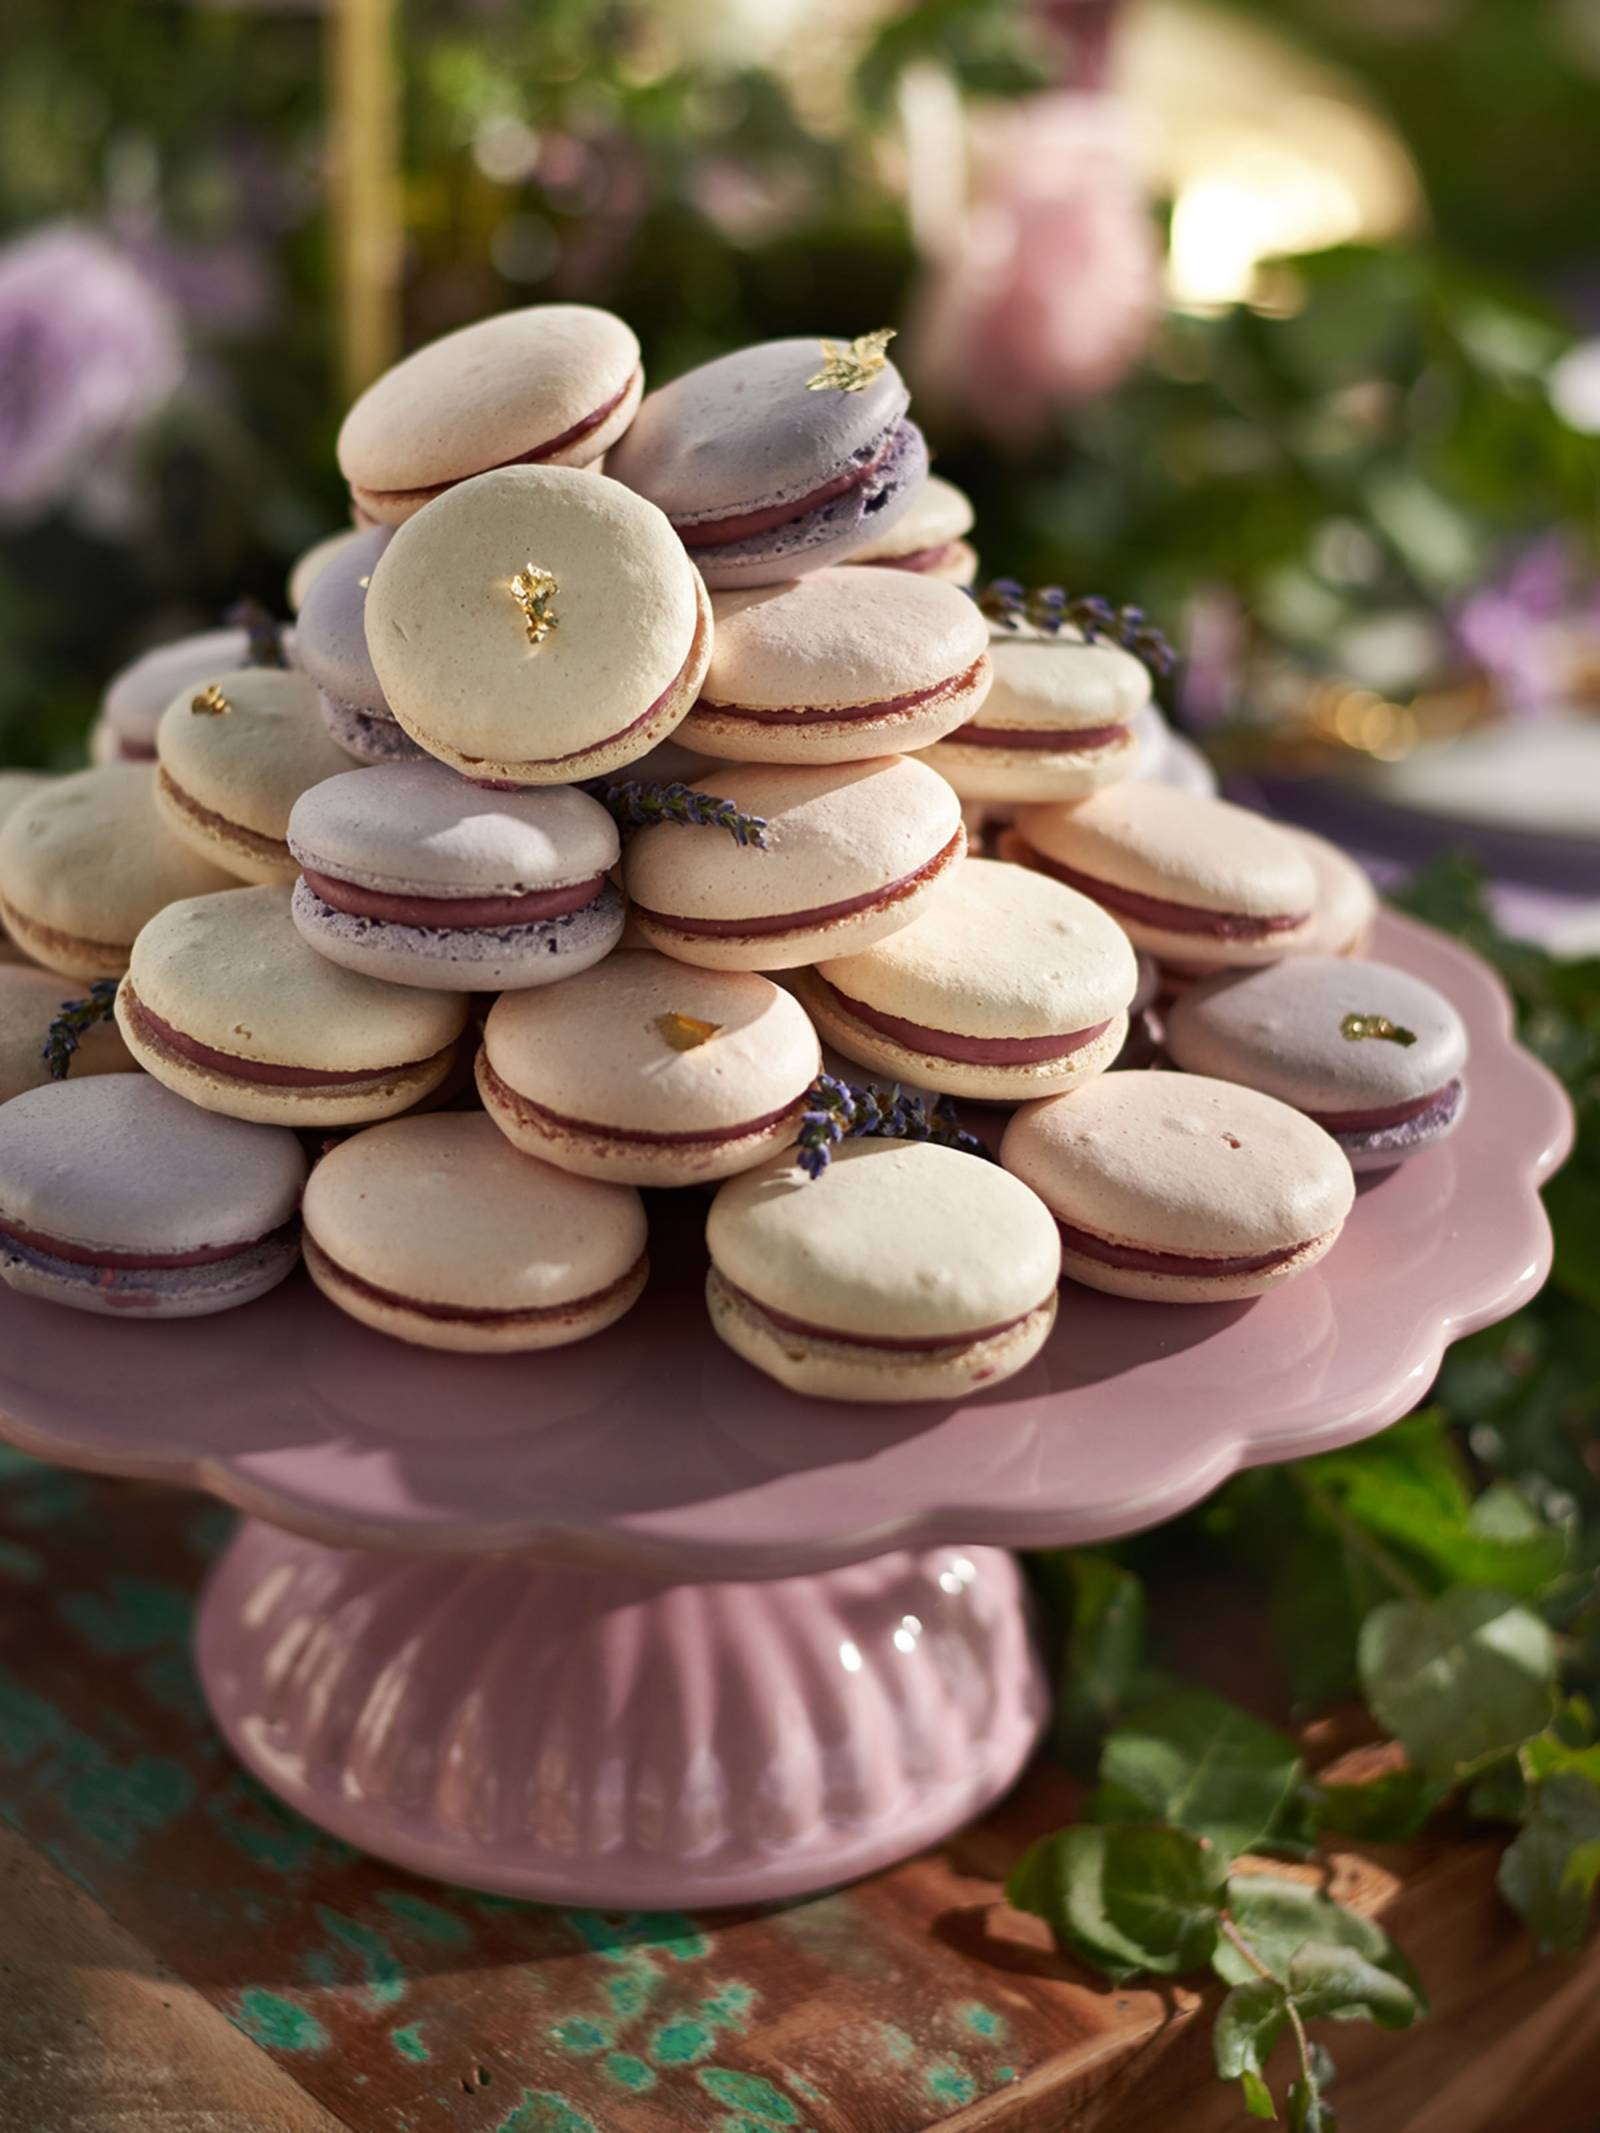 Ivory and lavender macarons on a mauve cake stand